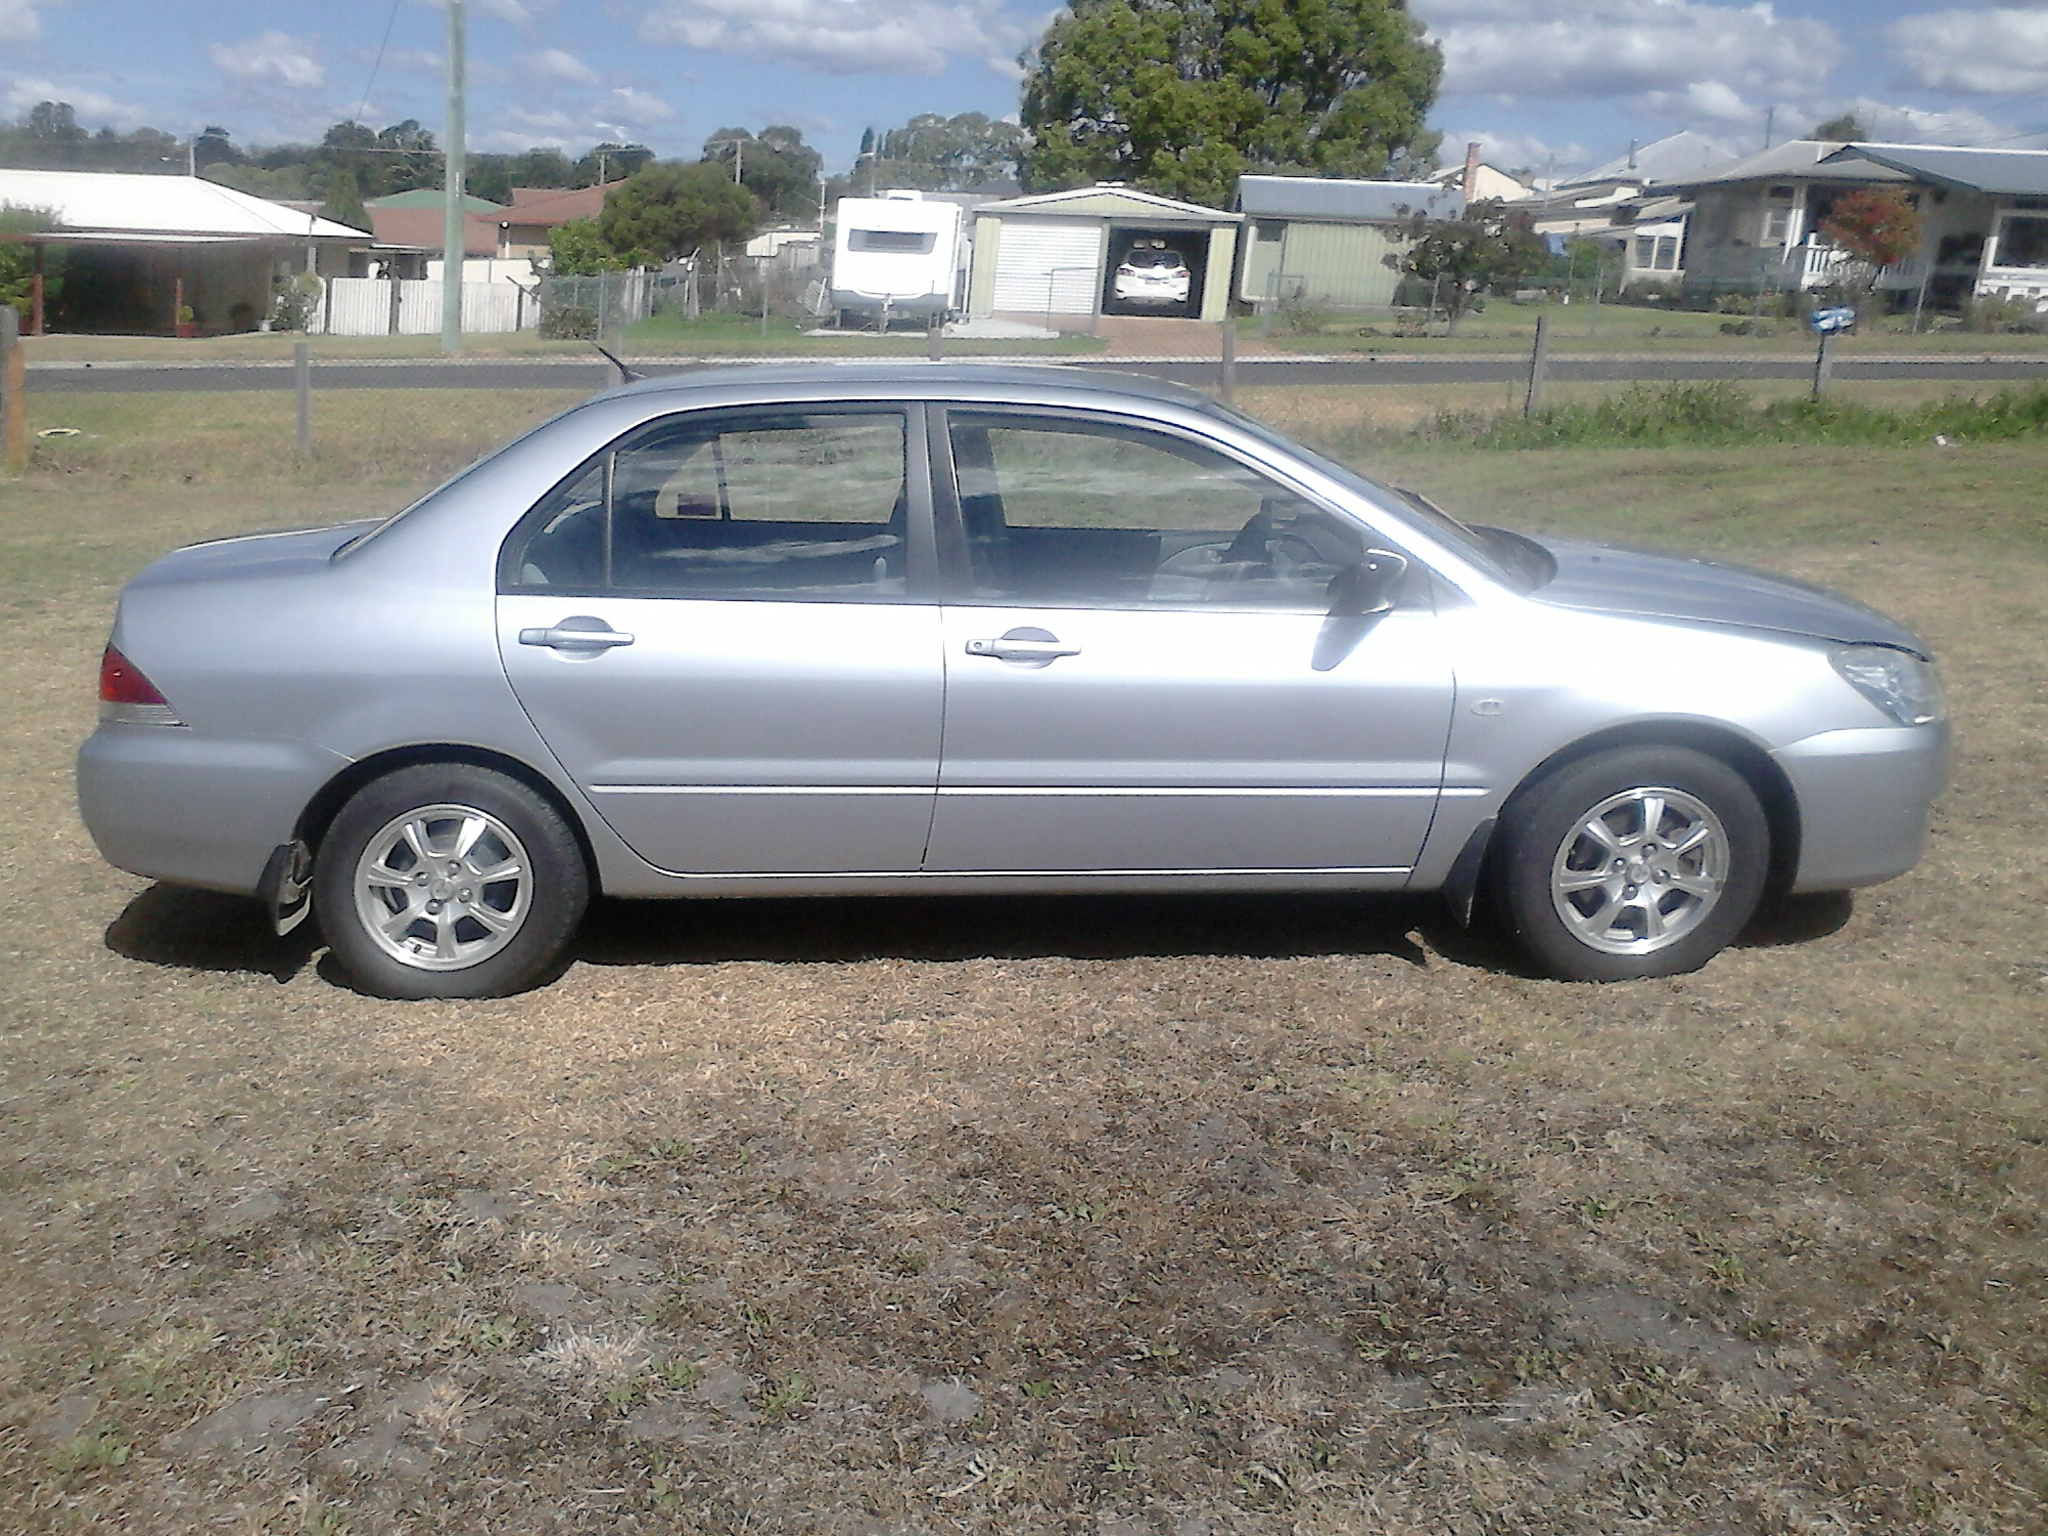 2004 mitsubishi lancer es ch for sale qld darling downs. Black Bedroom Furniture Sets. Home Design Ideas